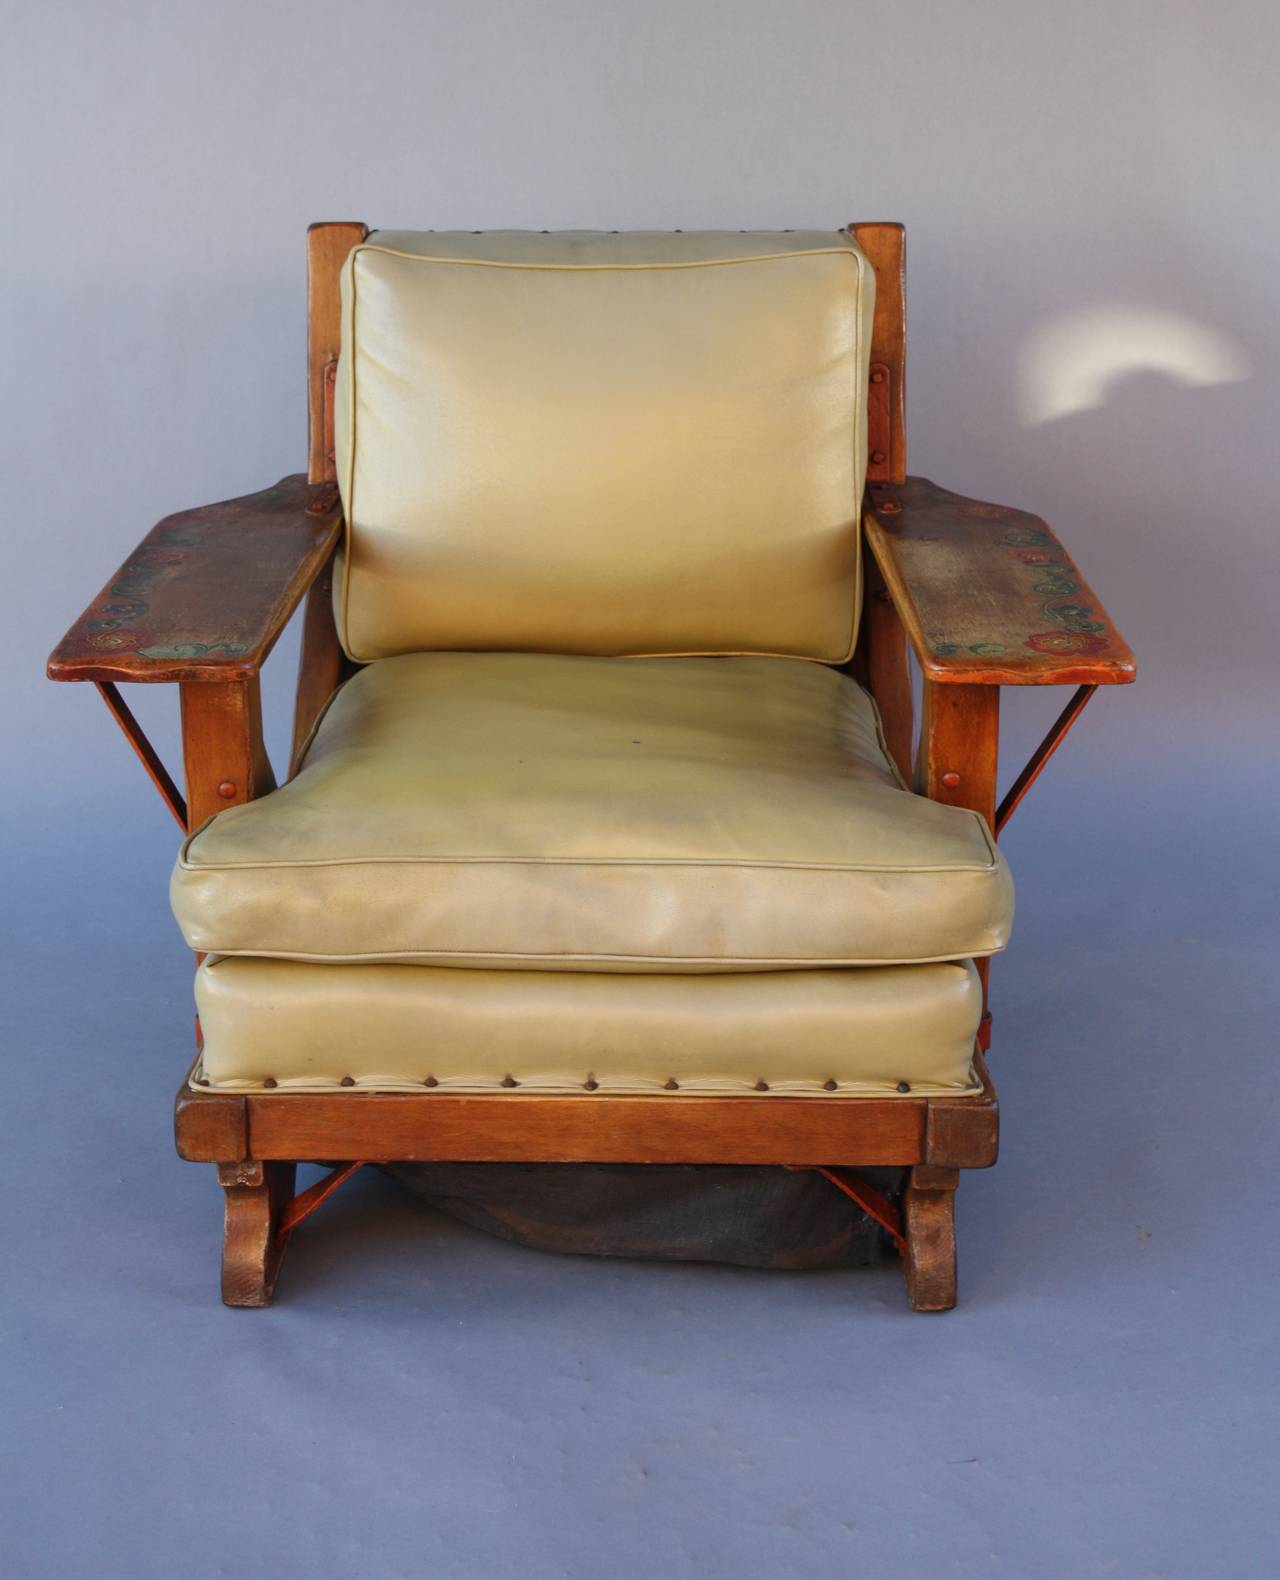 Due North Chairs Antique Rancho Large Scale Monterey Armchair At 1stdibs